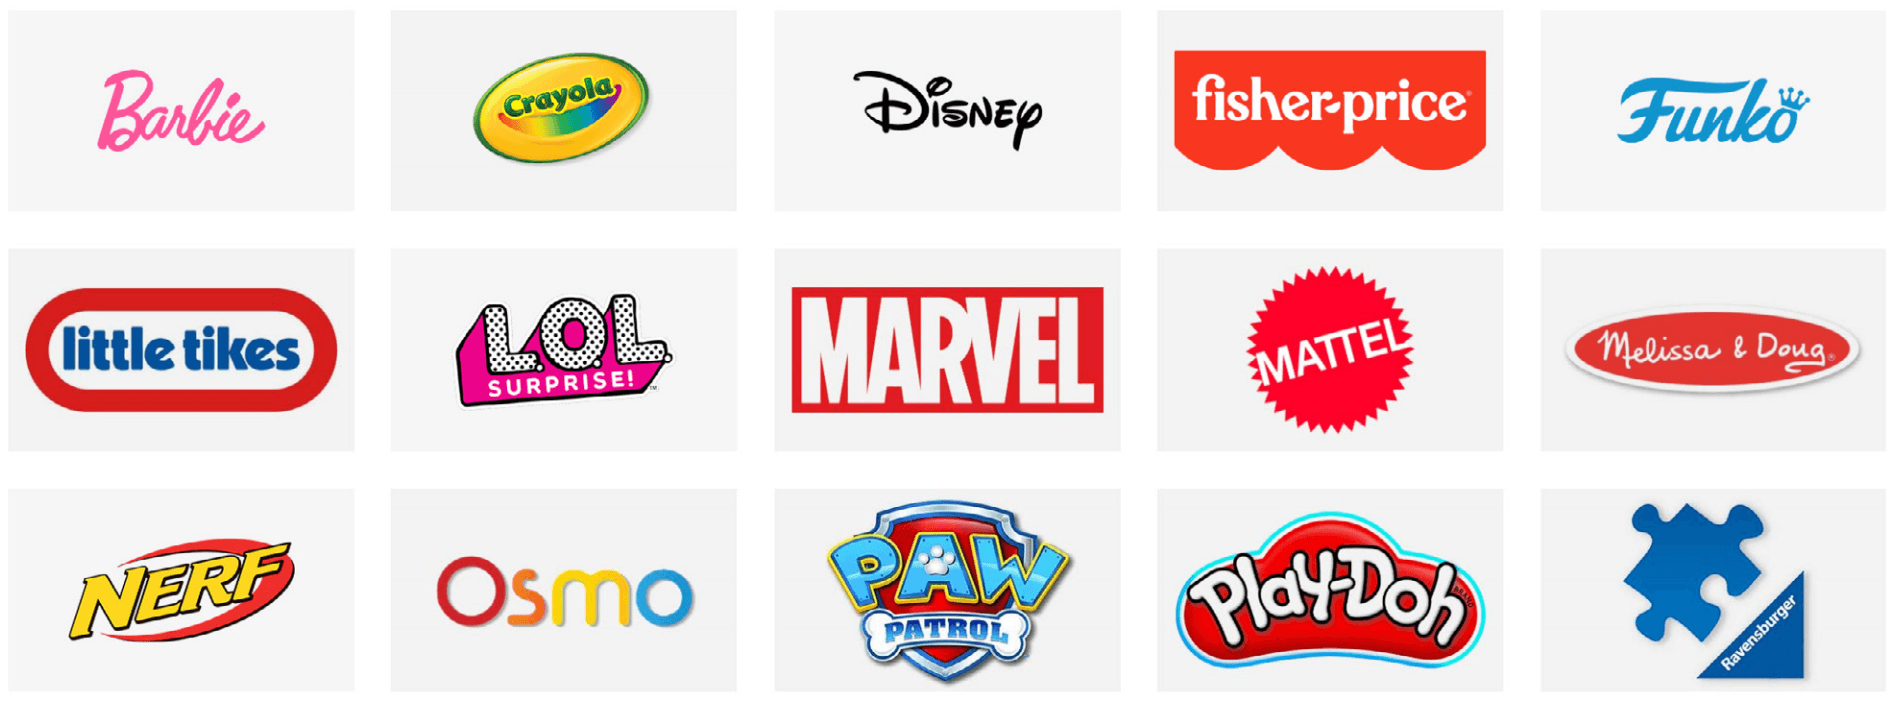 Toys and Games brand logos